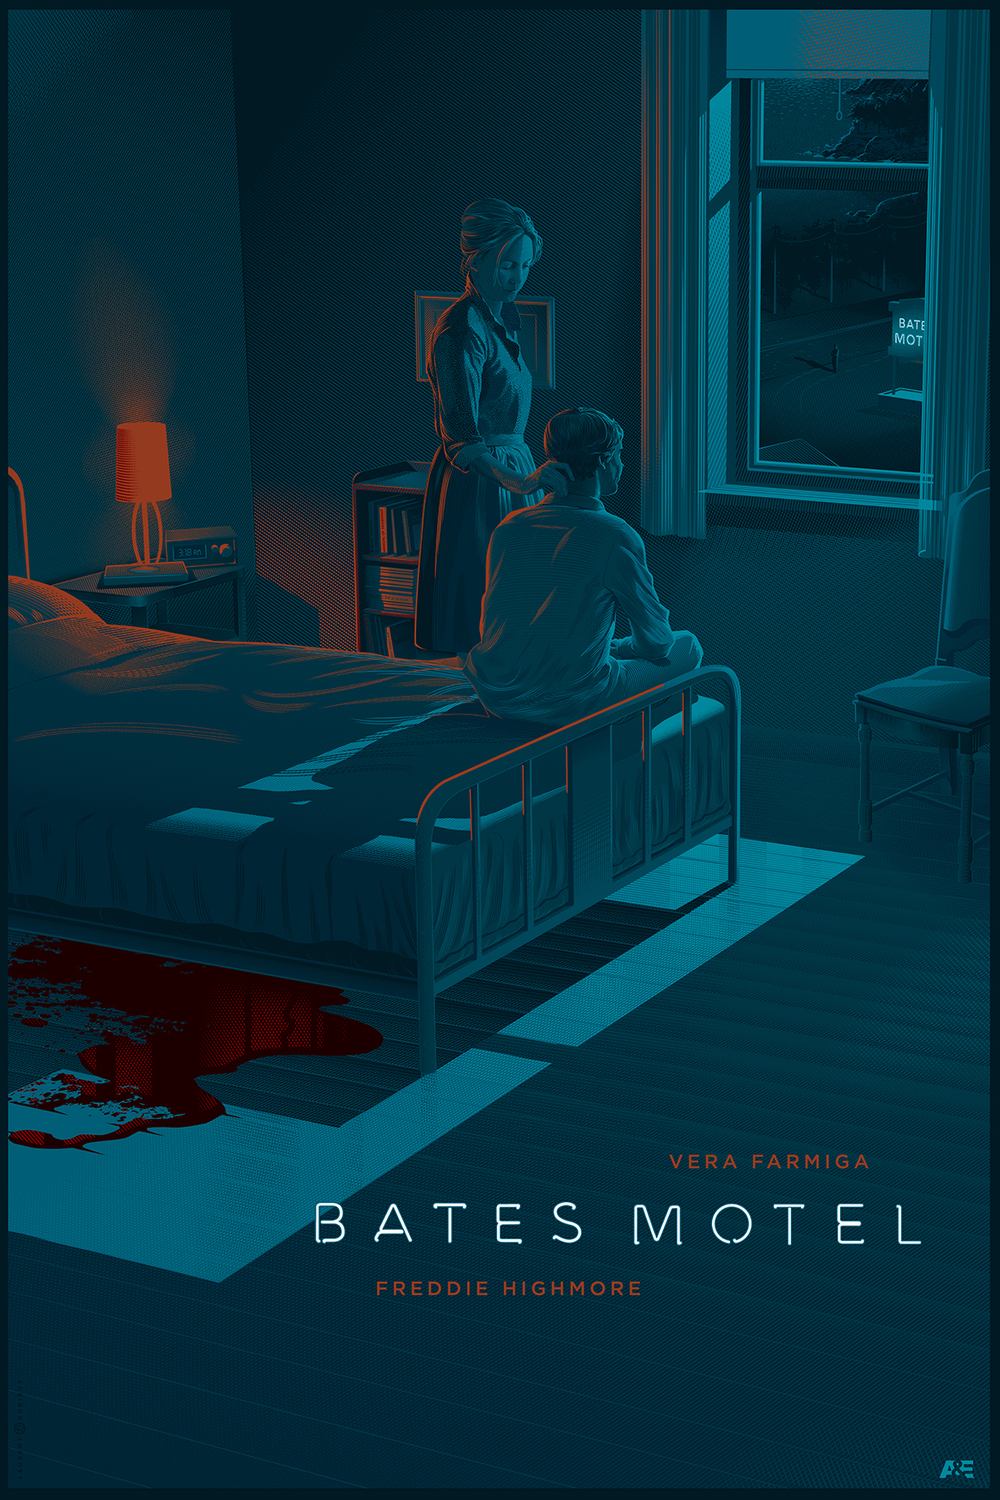 BATES+MOTEL-sep.jpg